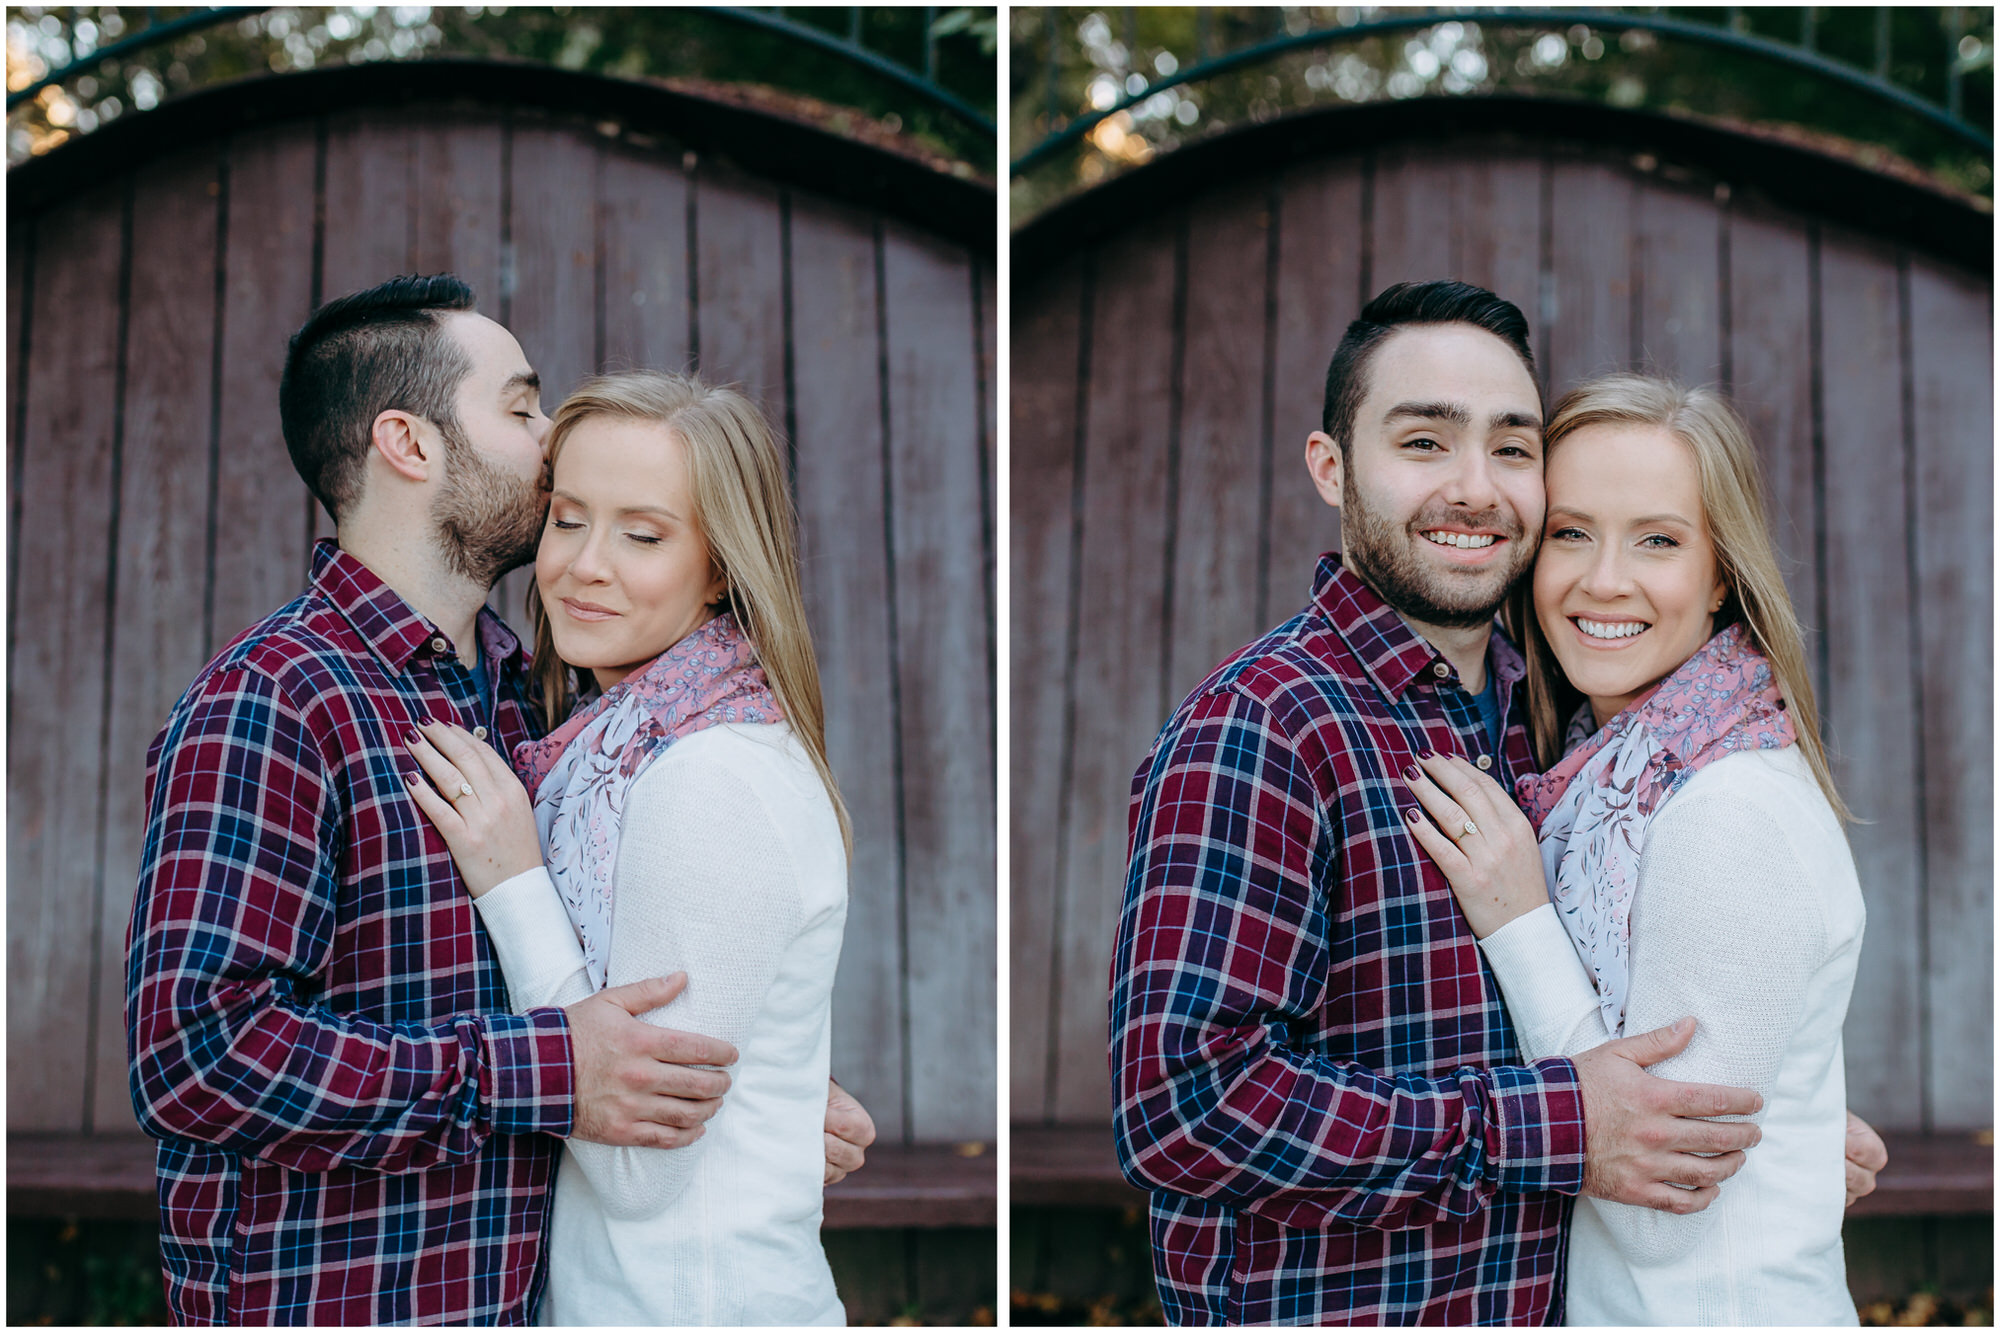 Beautiful couple poses and smiles for their New England engagement photos - by New Hampshire wedding photographer Ashleigh Laureen Photography in Lowell, Massachusetts